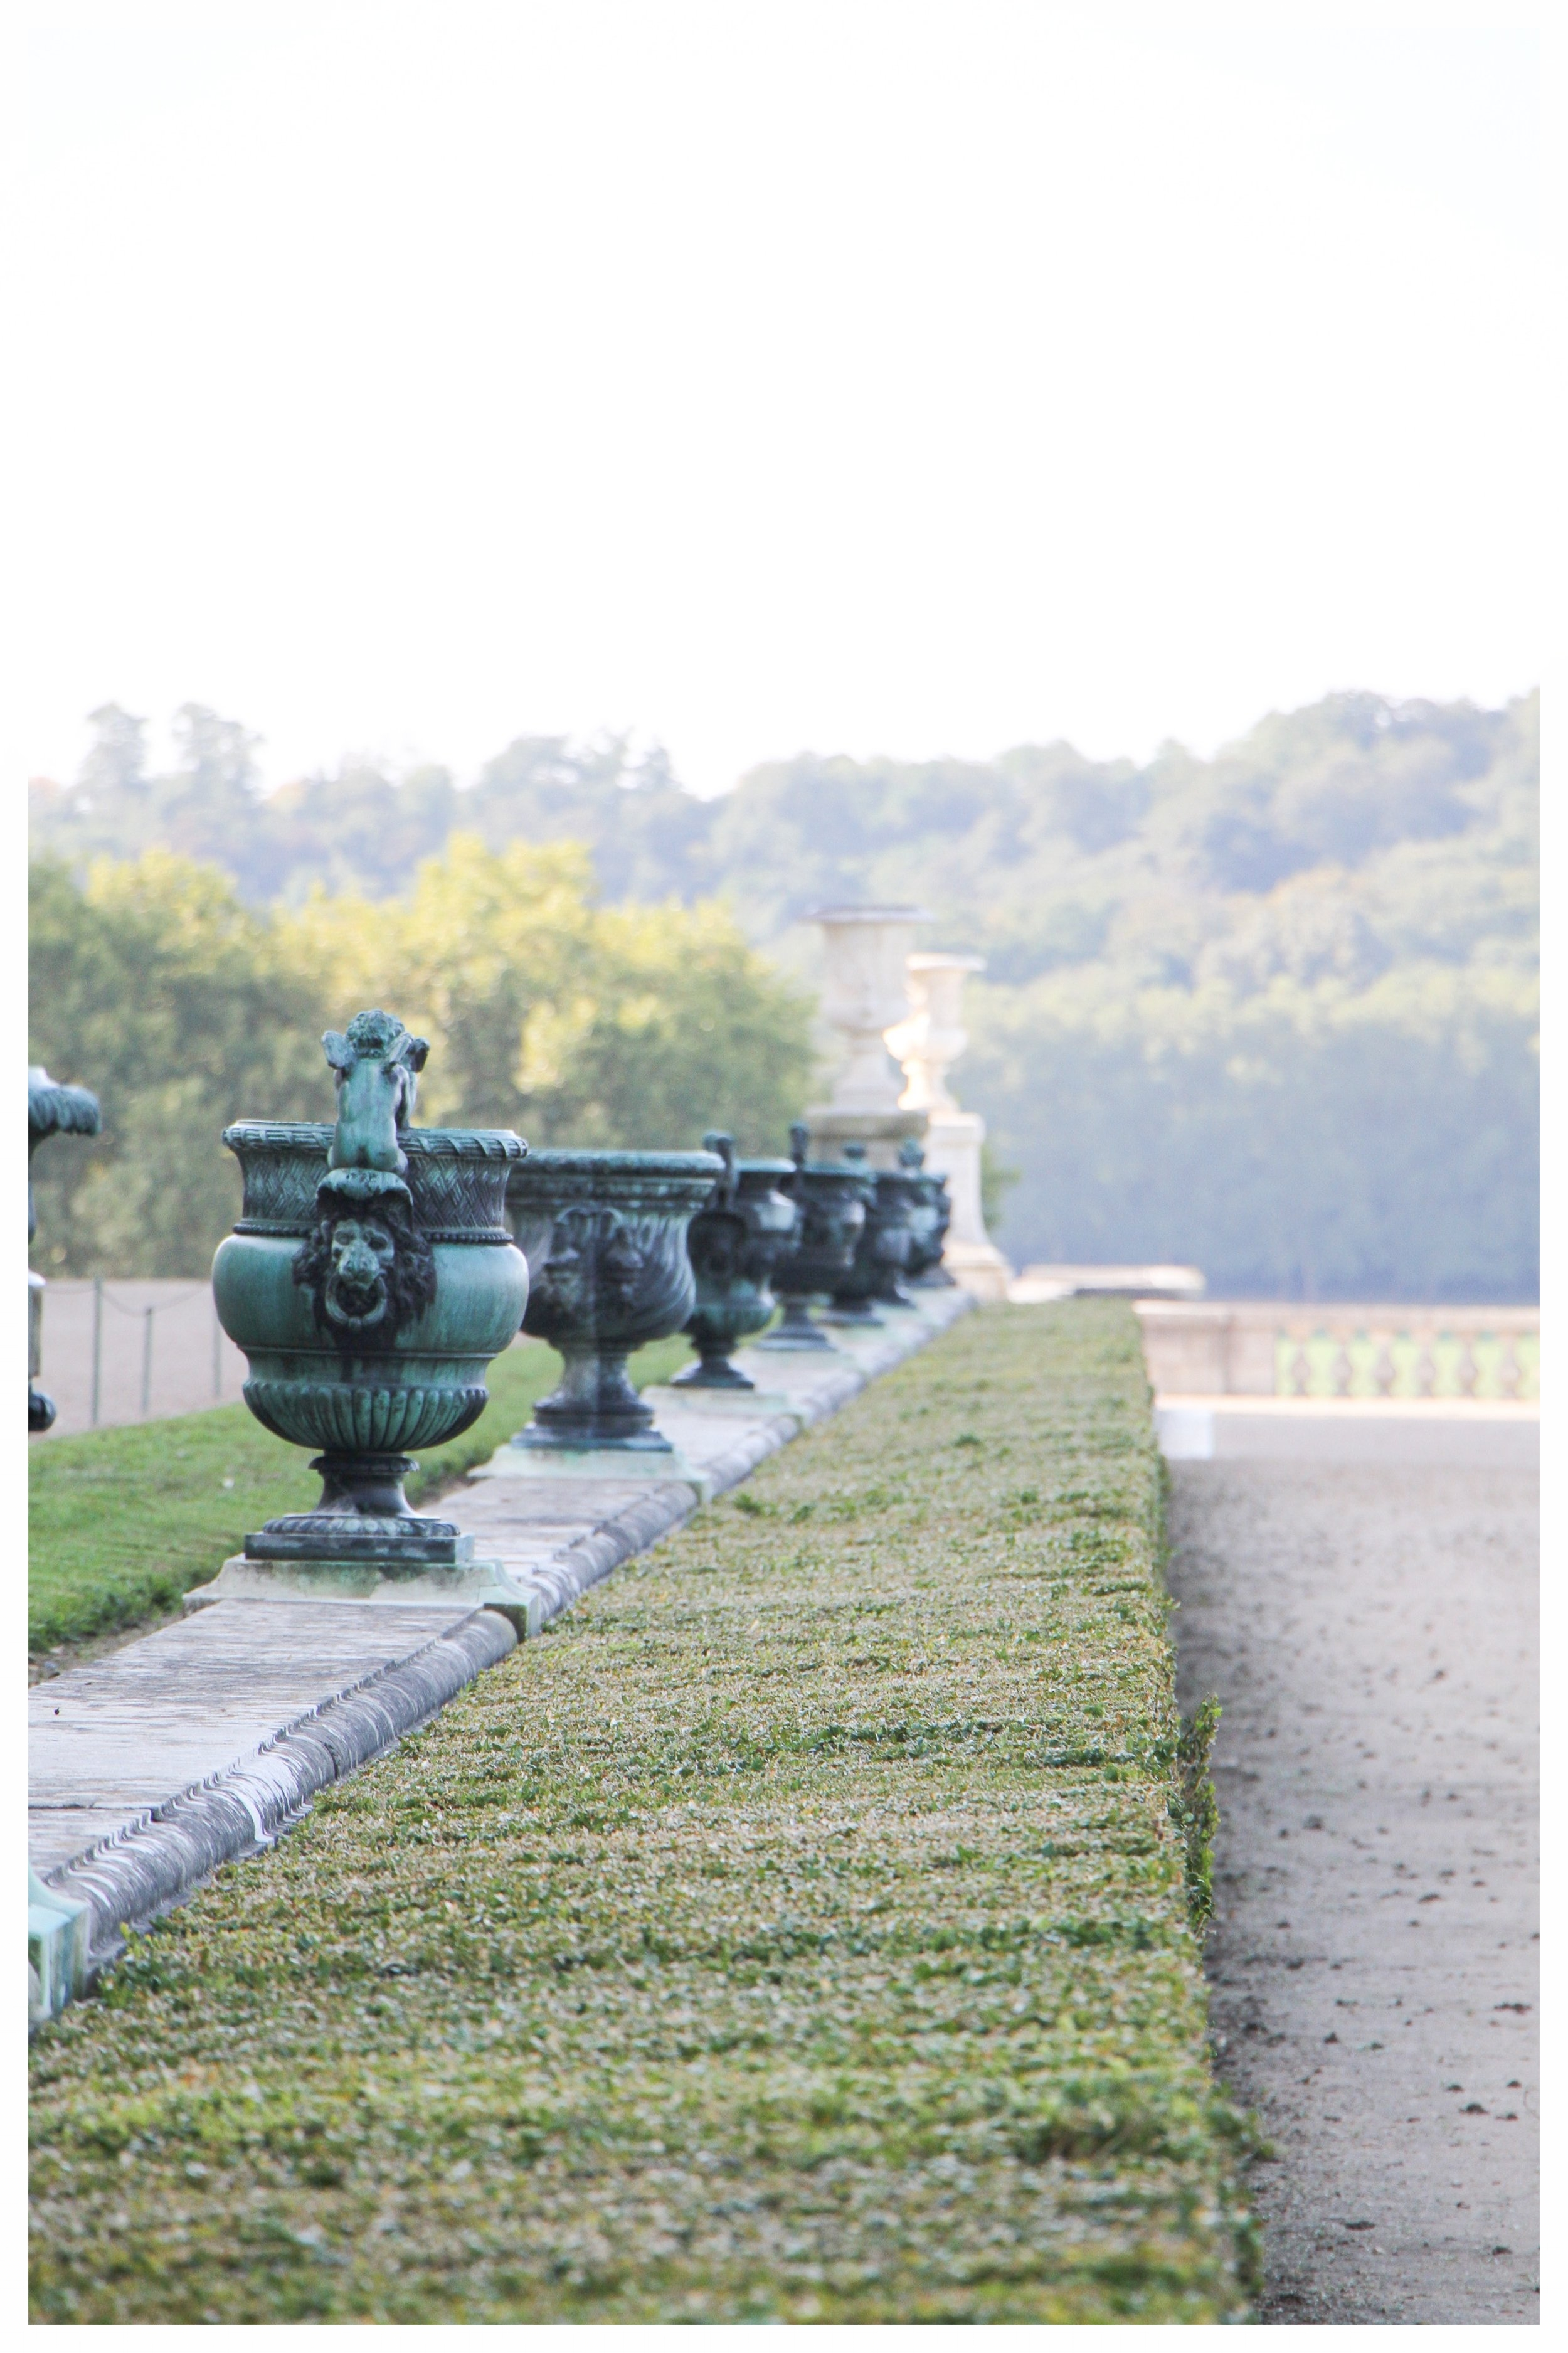 Visiting Versailles | How to Plan a Day Trip to the Palace